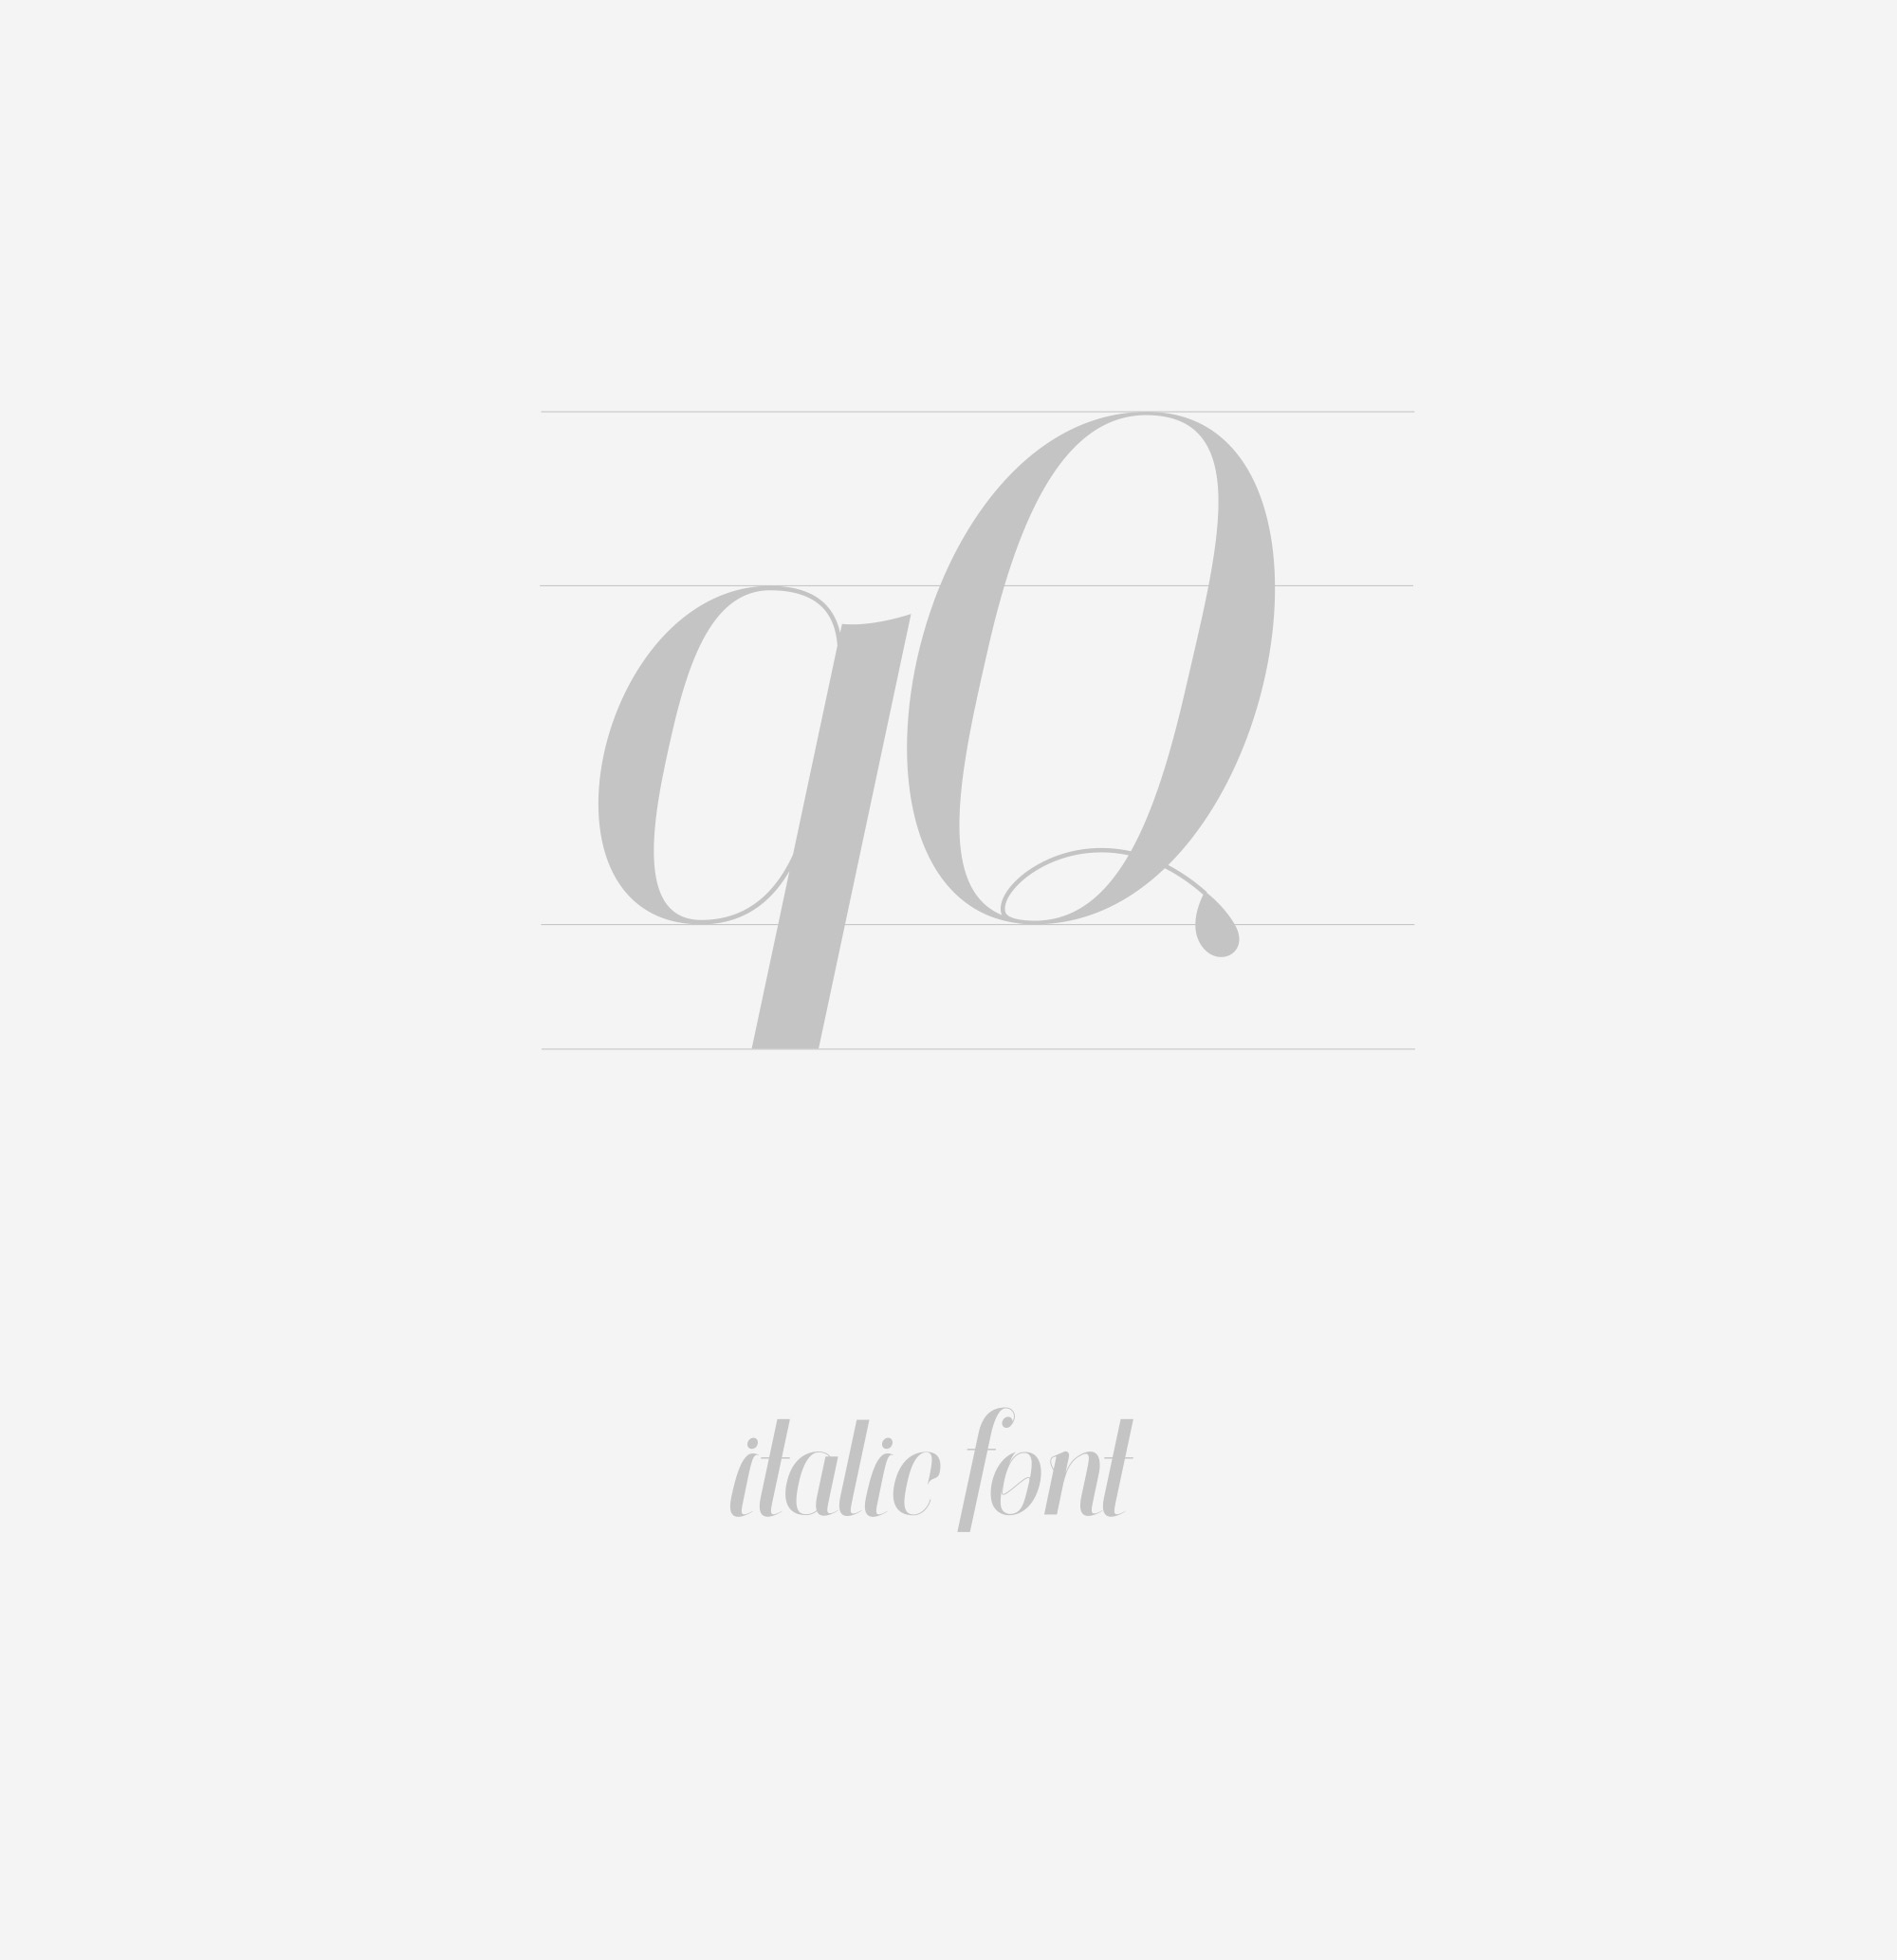 Finches Free Font - serif